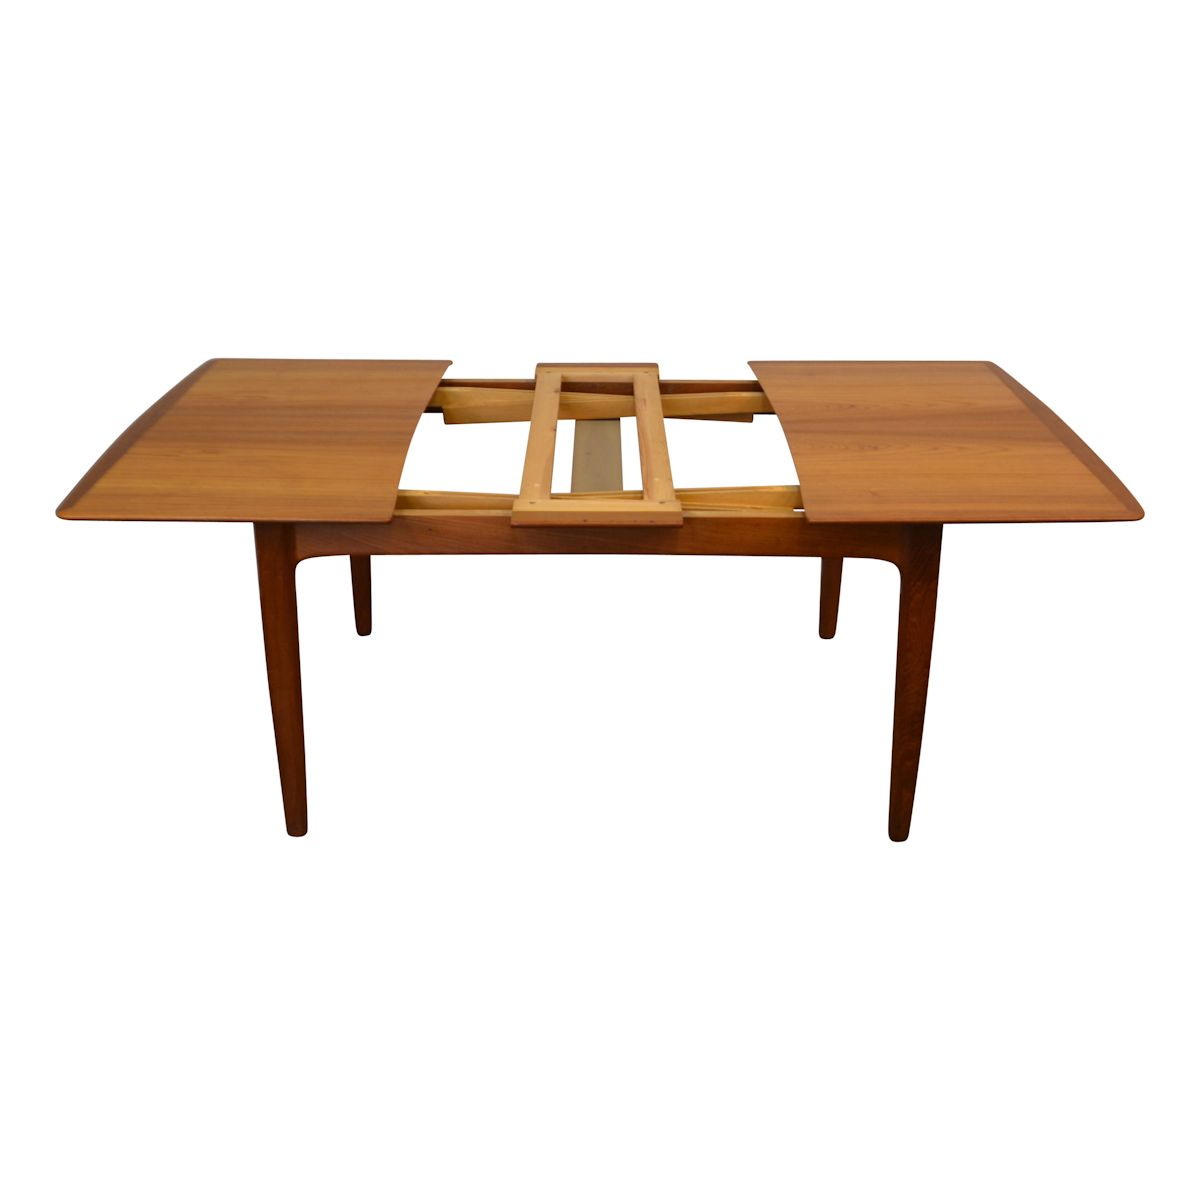 Vintage Danish Modern Svend Aage Madsen Dining Table - extension system